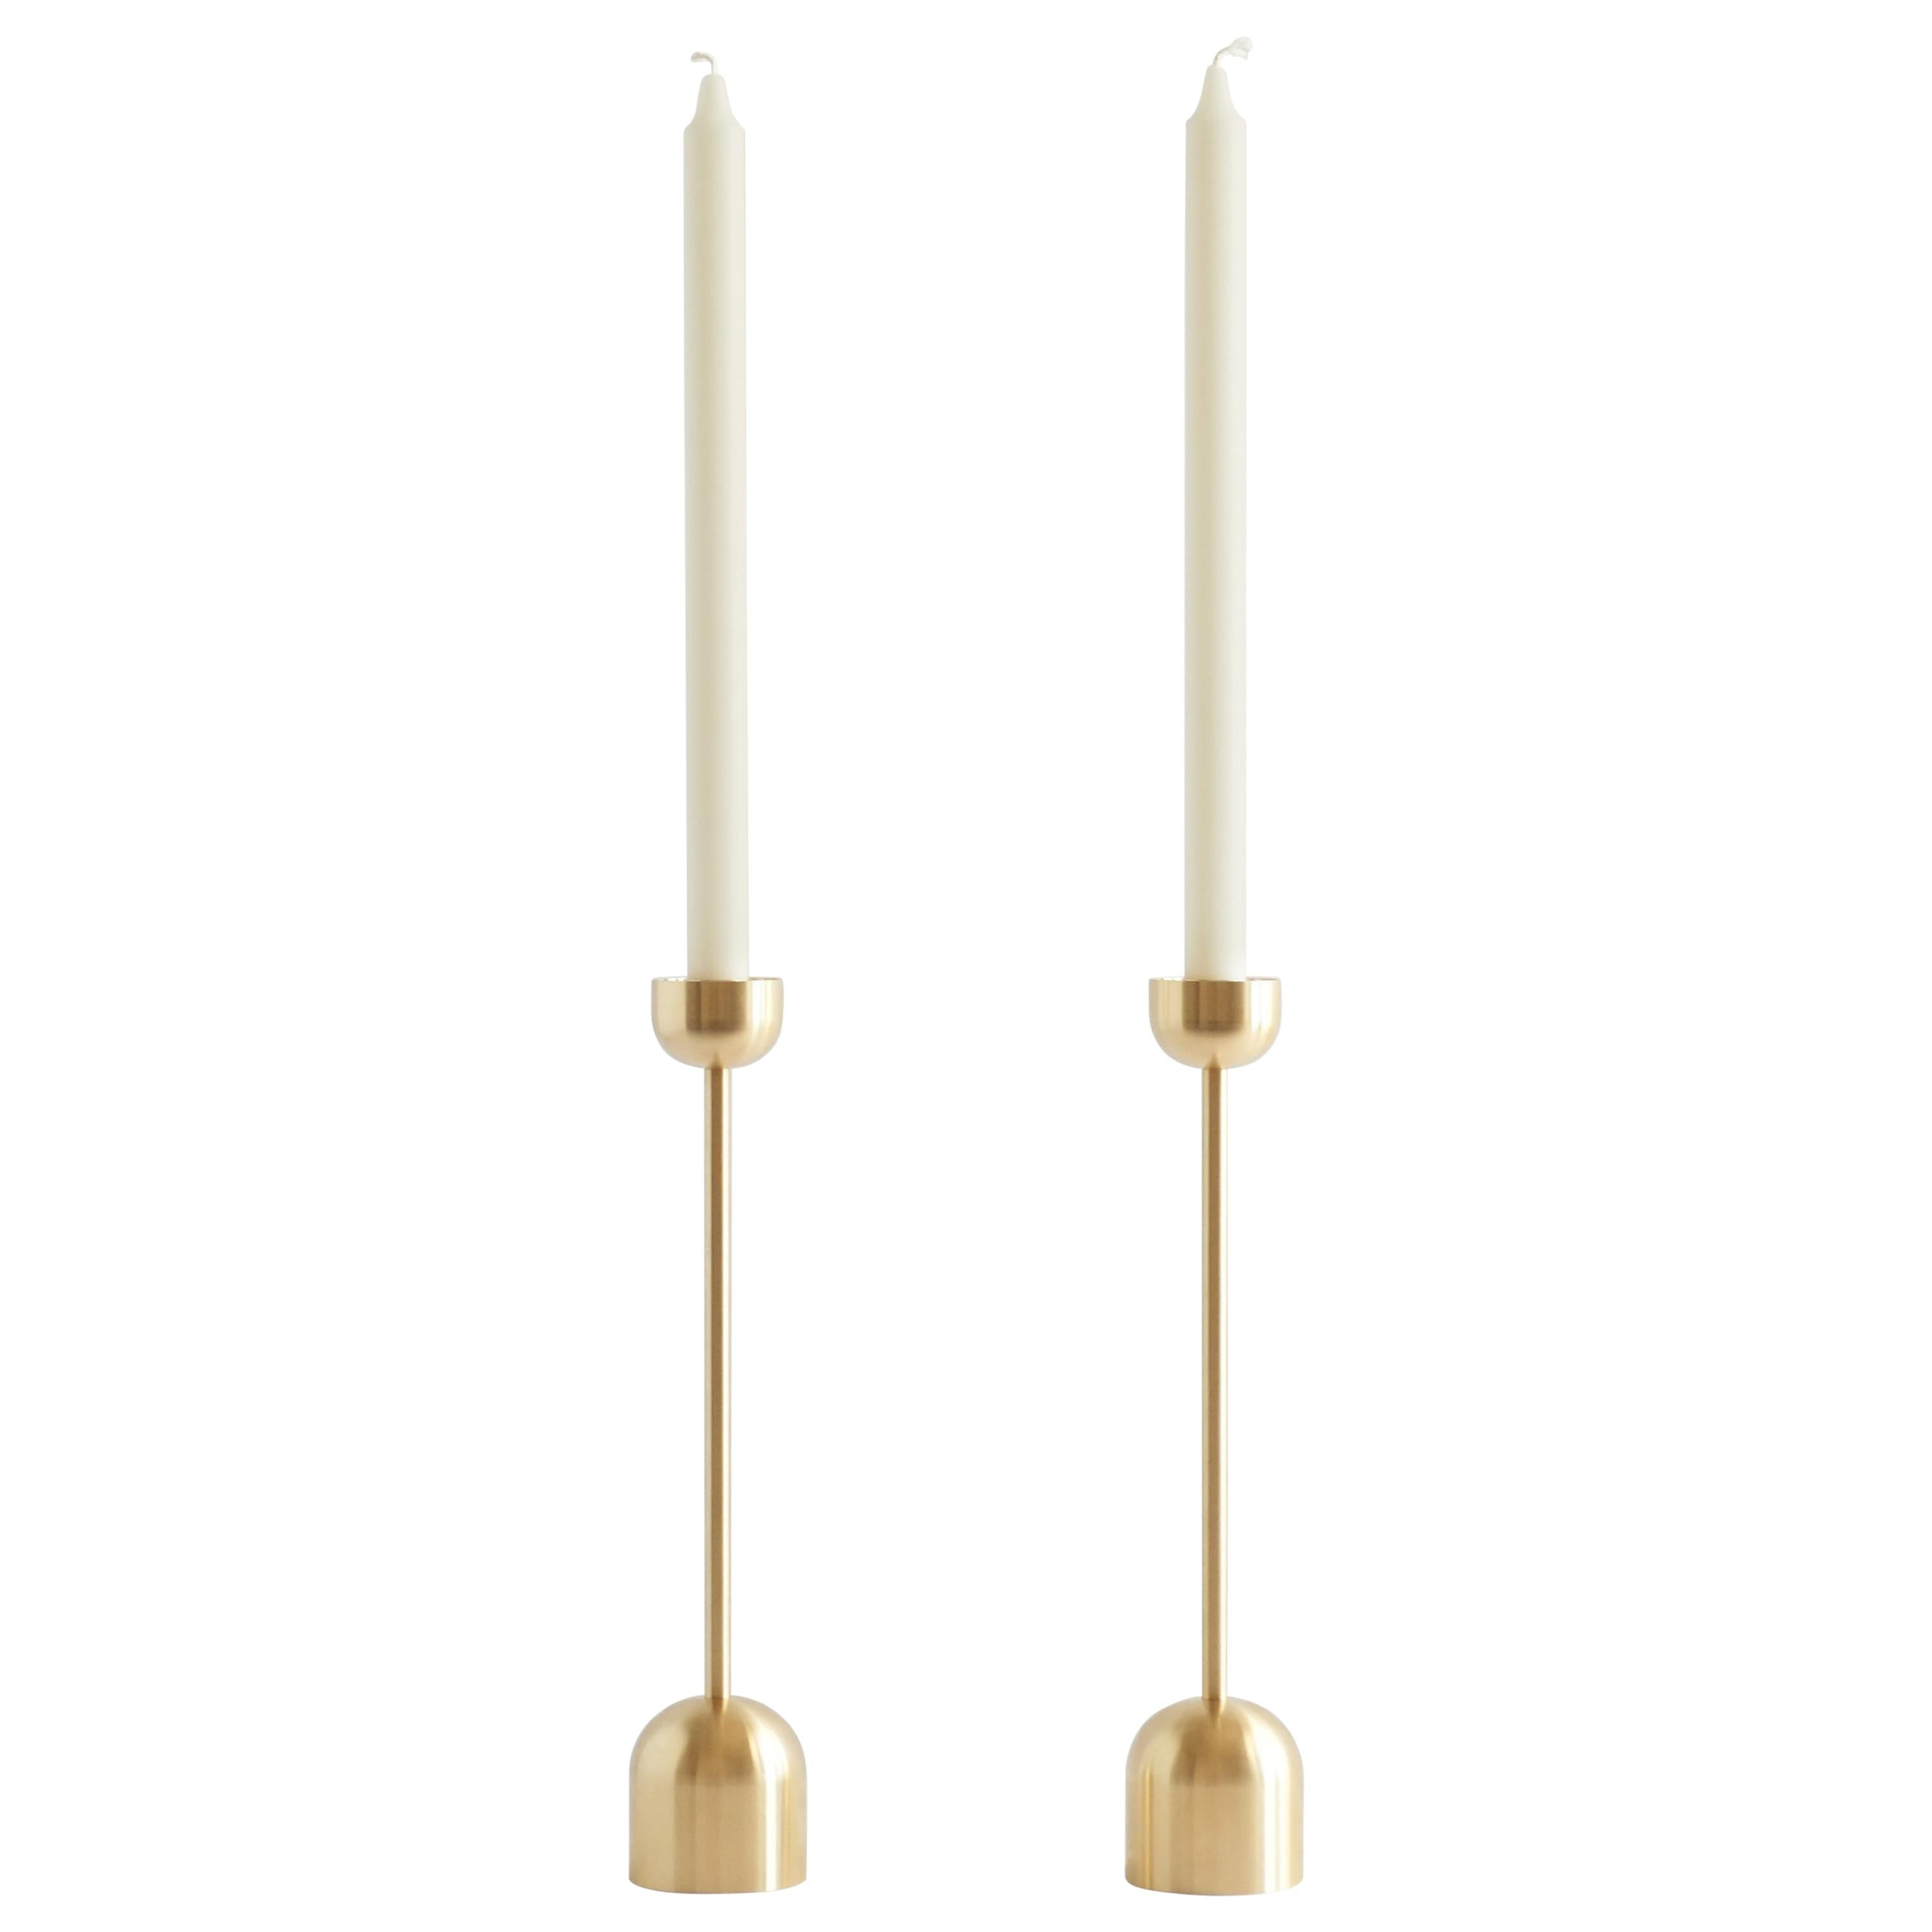 Small Contemporary Brass Dome Spindle Candleholders by Fort Standard